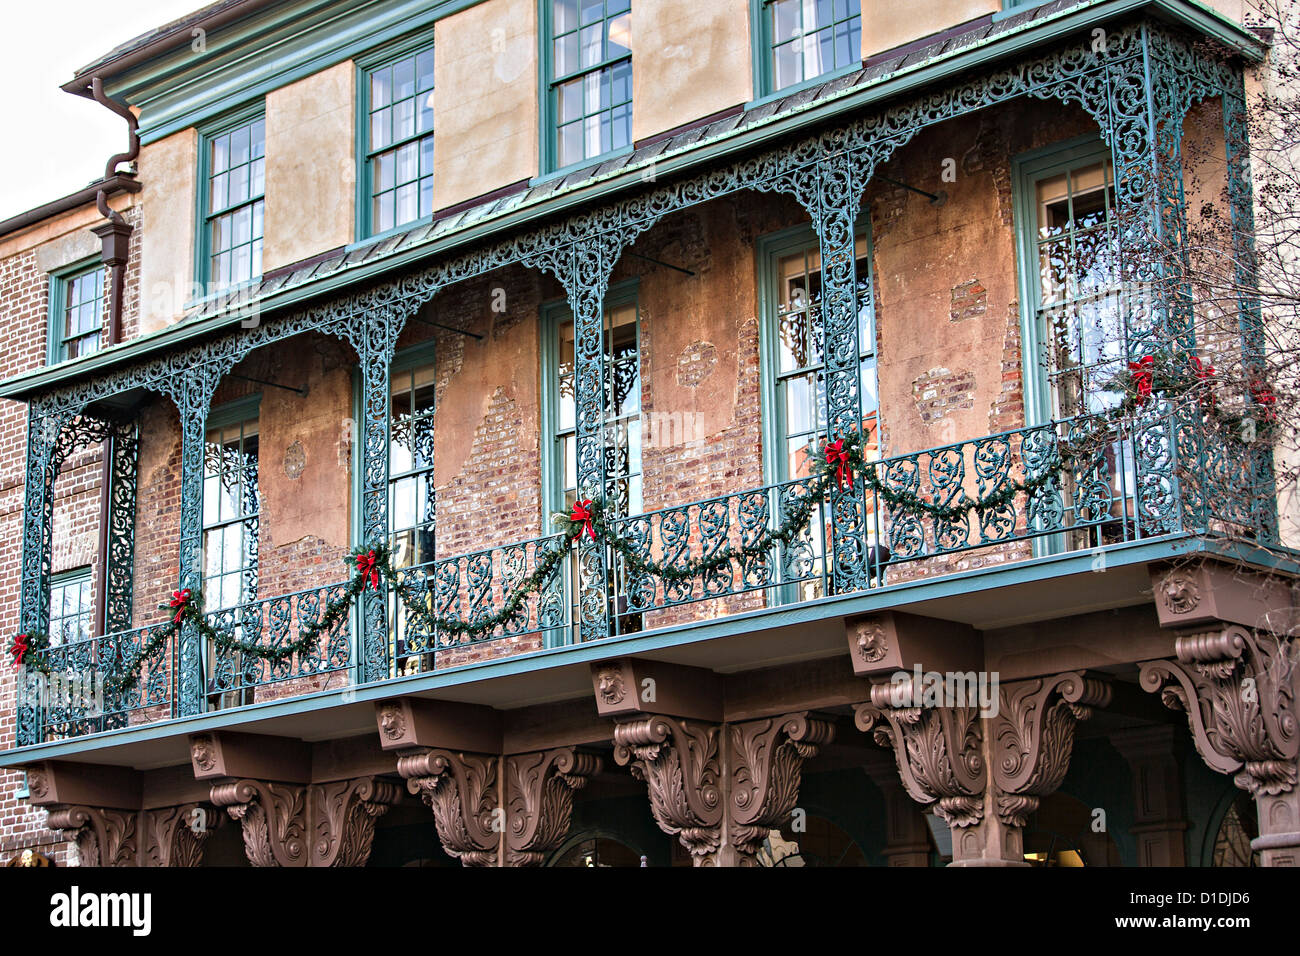 Historic Dock Street Theater decorated for Christmas in Charleston, South Carolina. - Stock Image